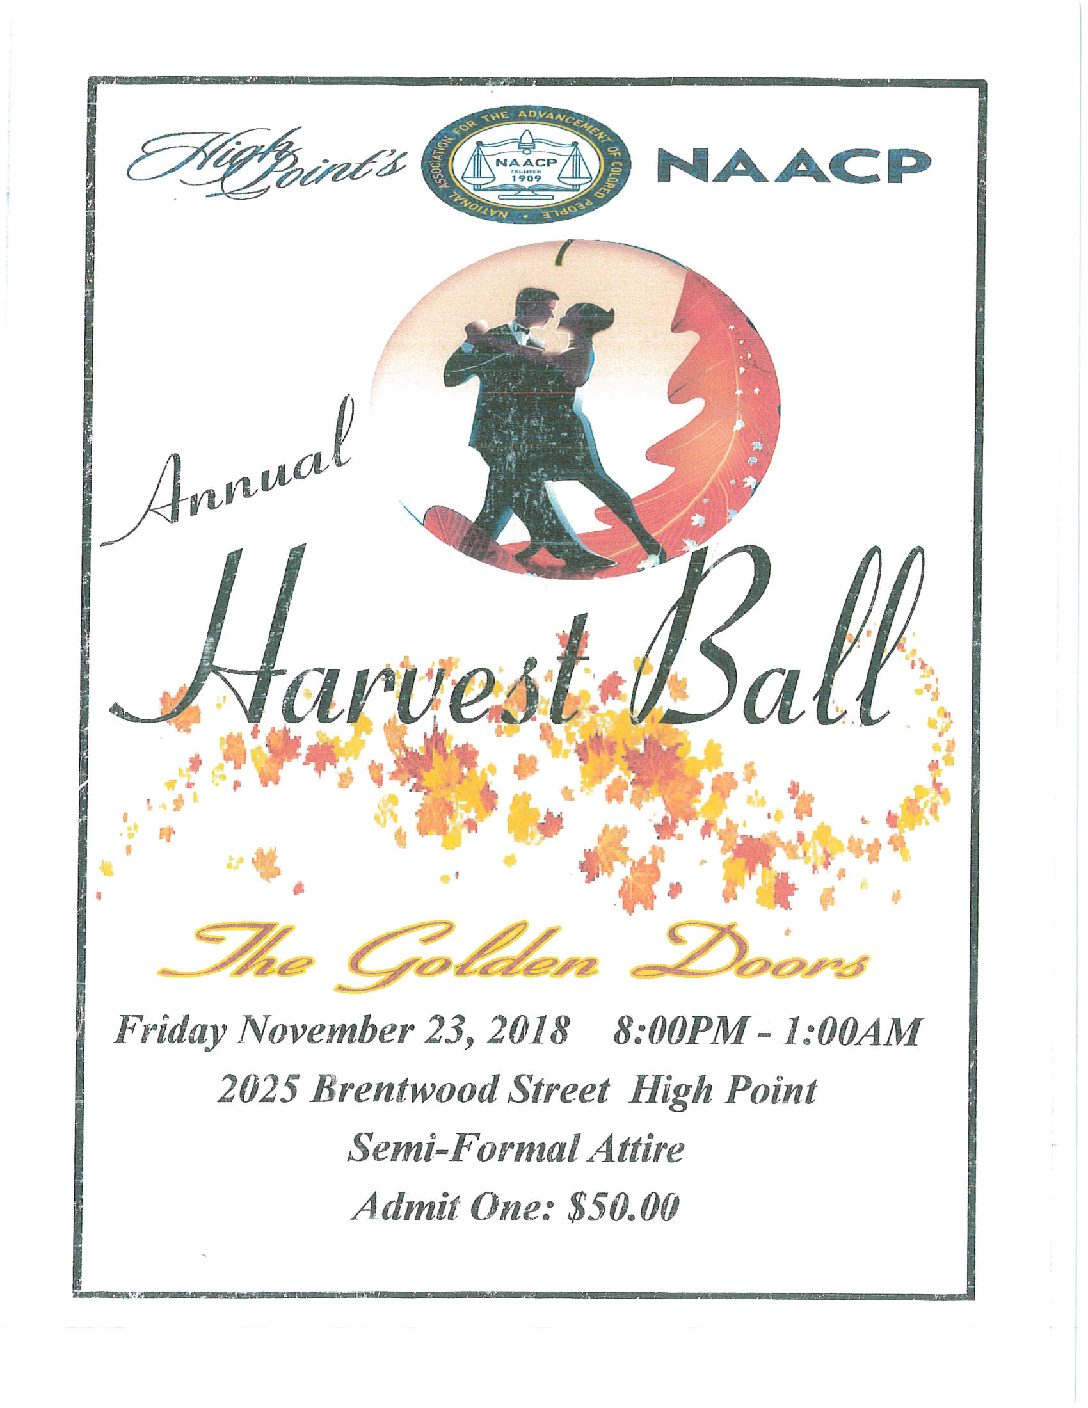 Save The Date: Harvest Ball 2018 Friday Nov 23rd 2018